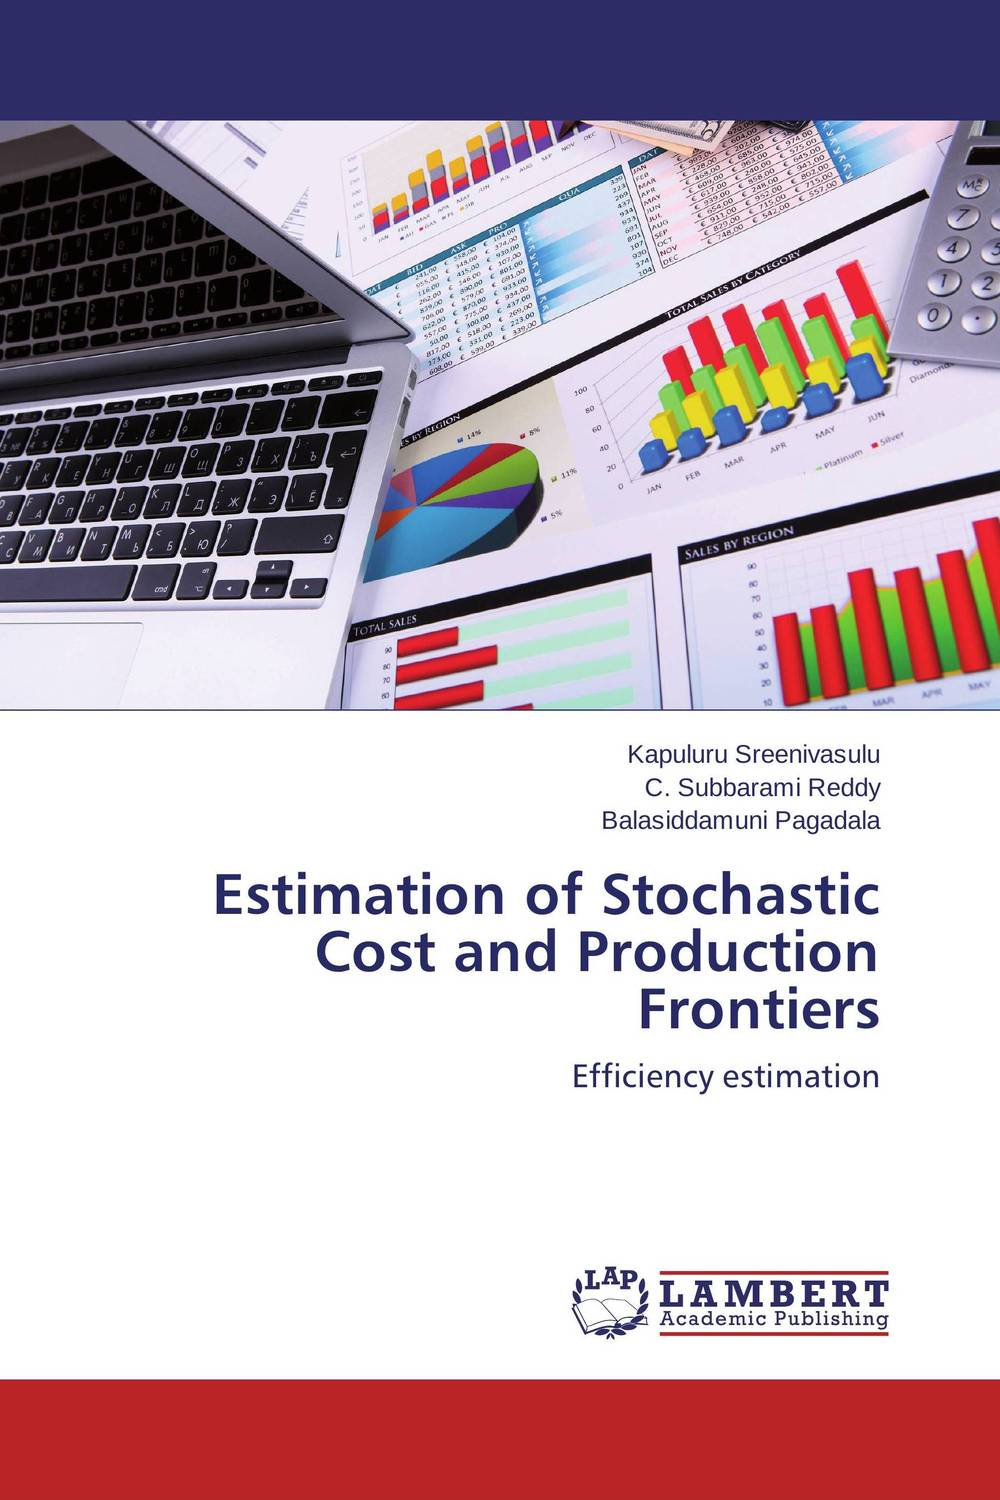 Estimation of Stochastic Cost and Production Frontiers kunchi madhavi and tirupathi rao padi stochastic modeling